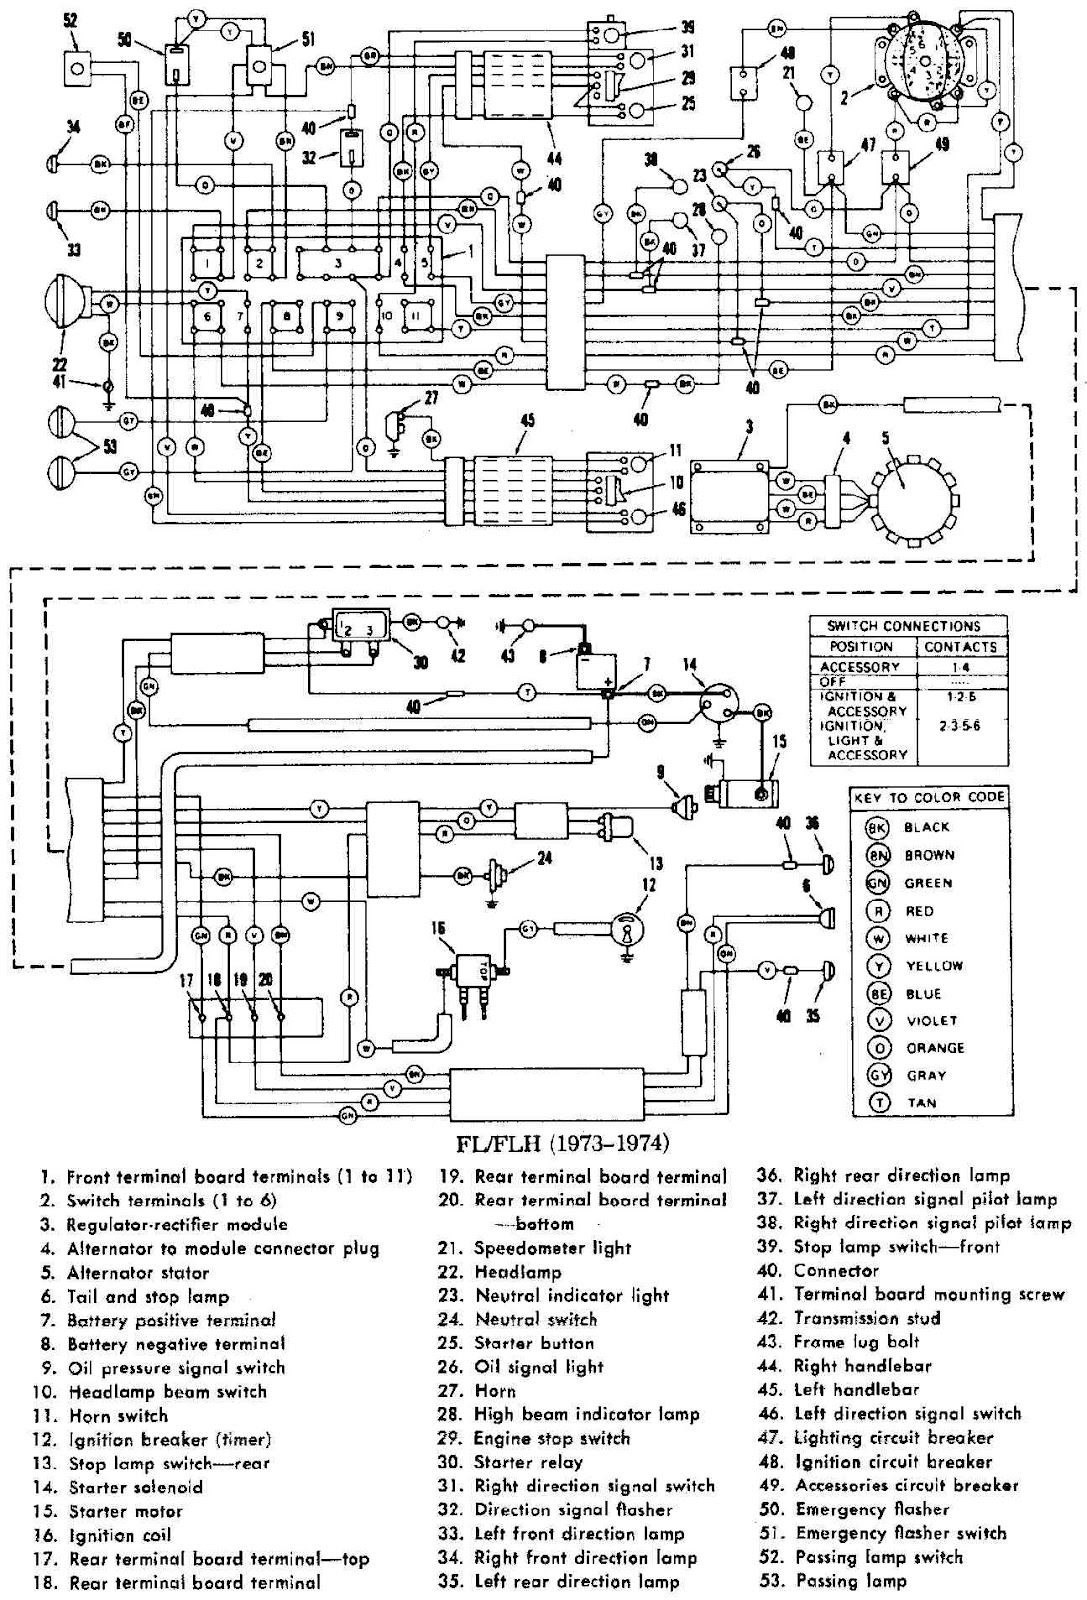 harley davidson fl-flh 1973-74 motorcycle electrical wiring diagram | all about wiring diagrams 1982 harley davidson xlx wiring diagrams #11